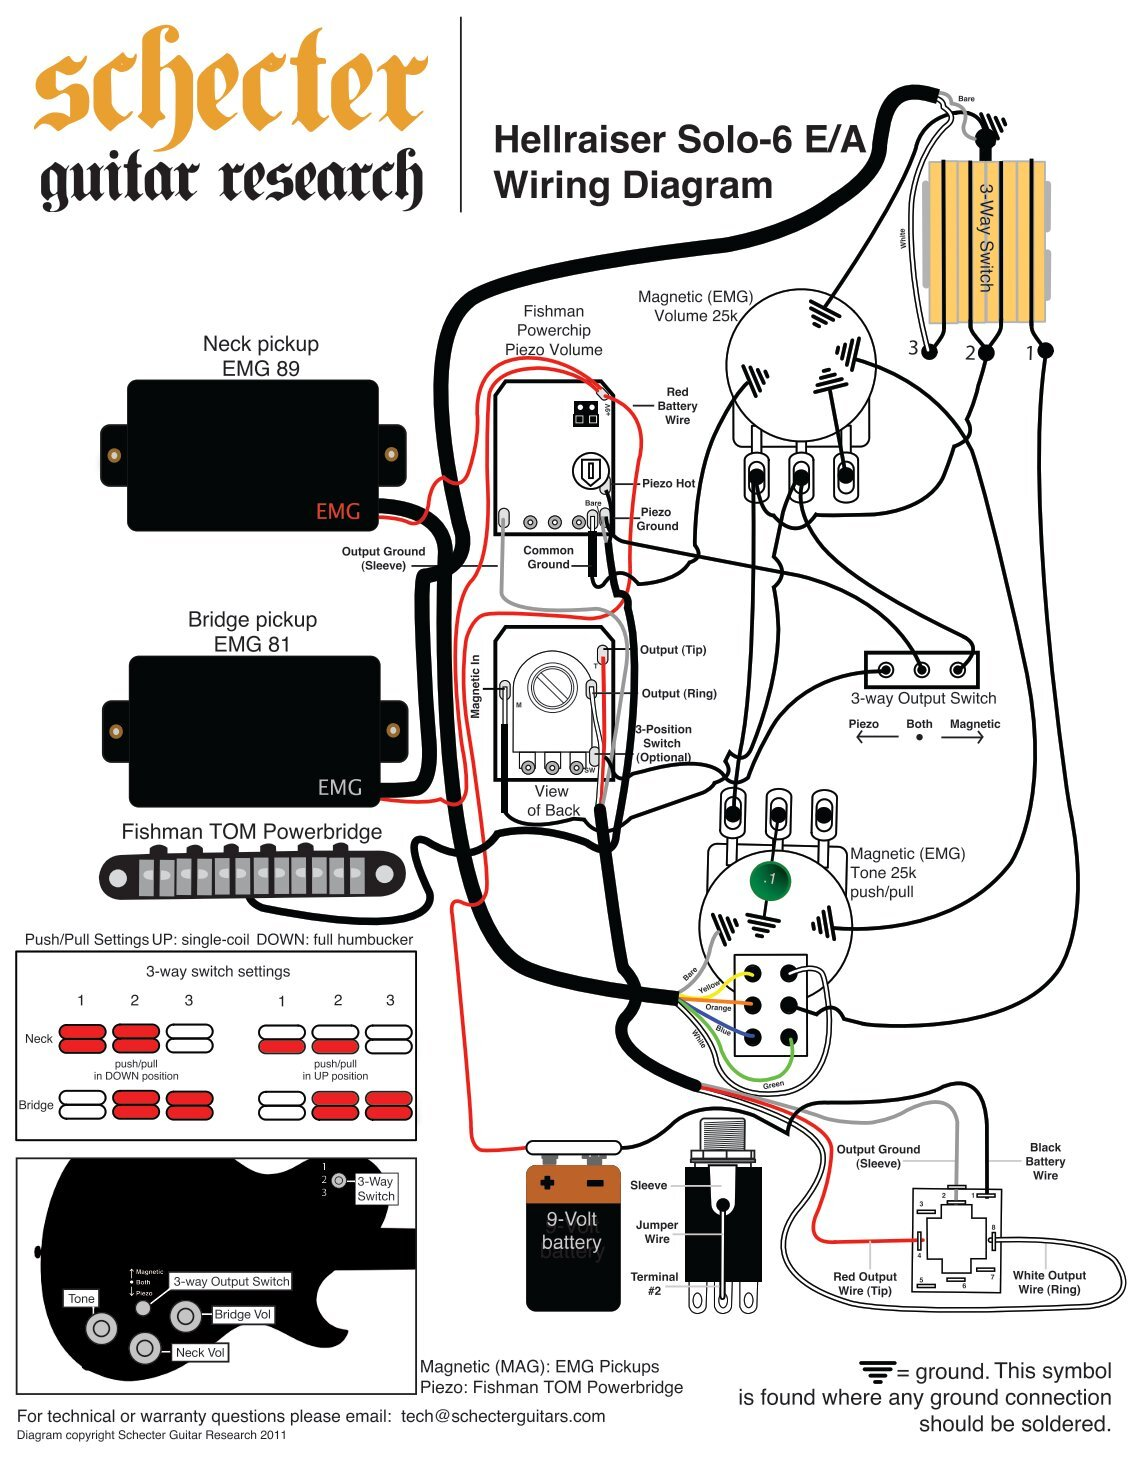 Fishman Fluence Wiring Diagram. Gandul. 45.77.79.119